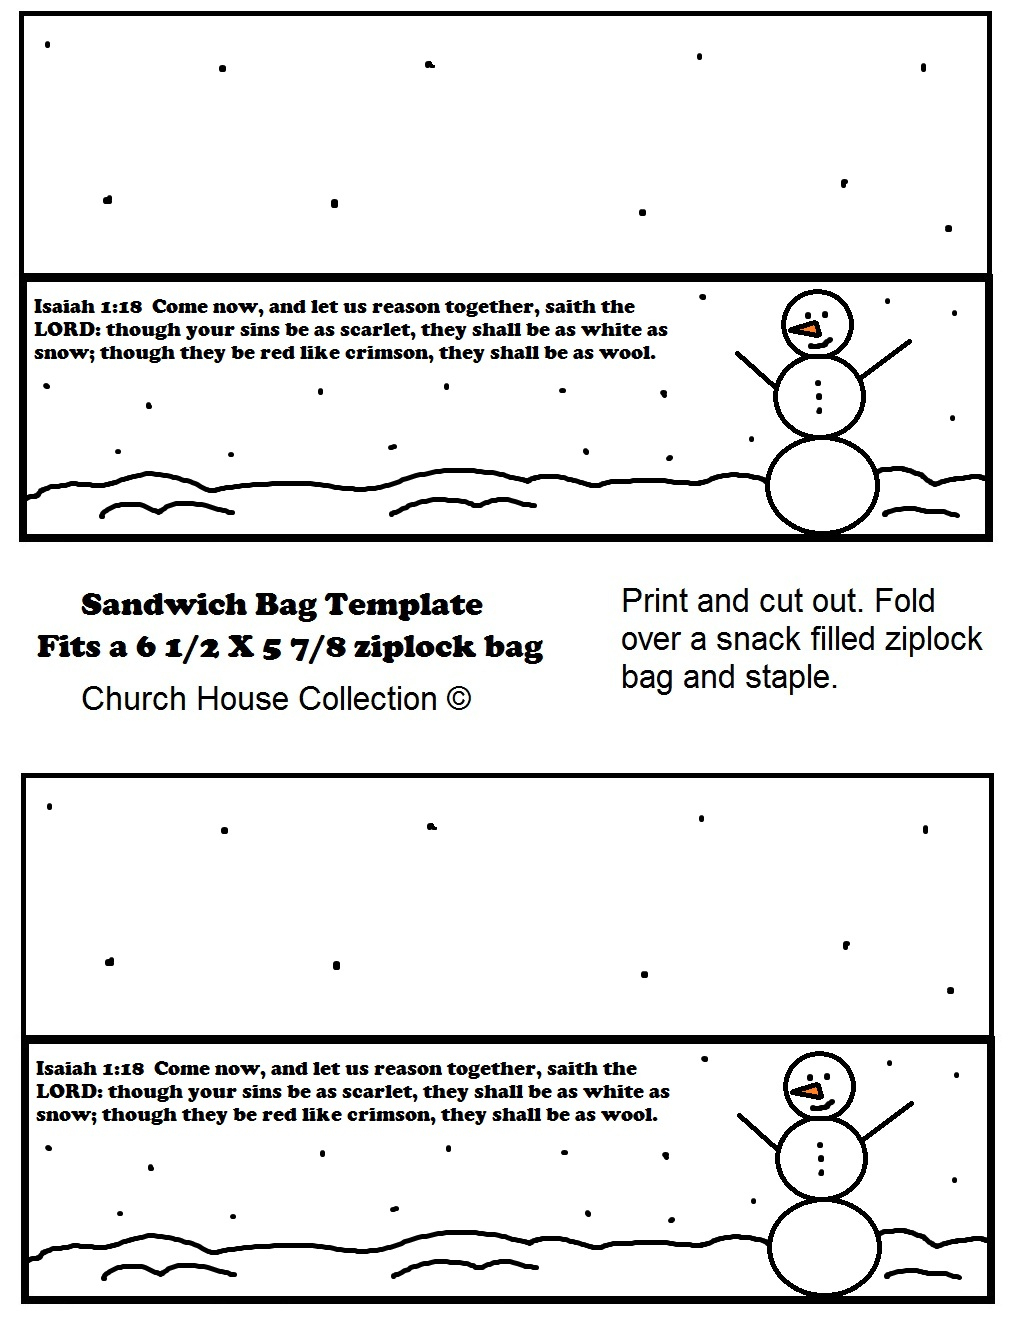 Snowman Sunday School Lesson - Free Printable Sunday School Lessons For Kids